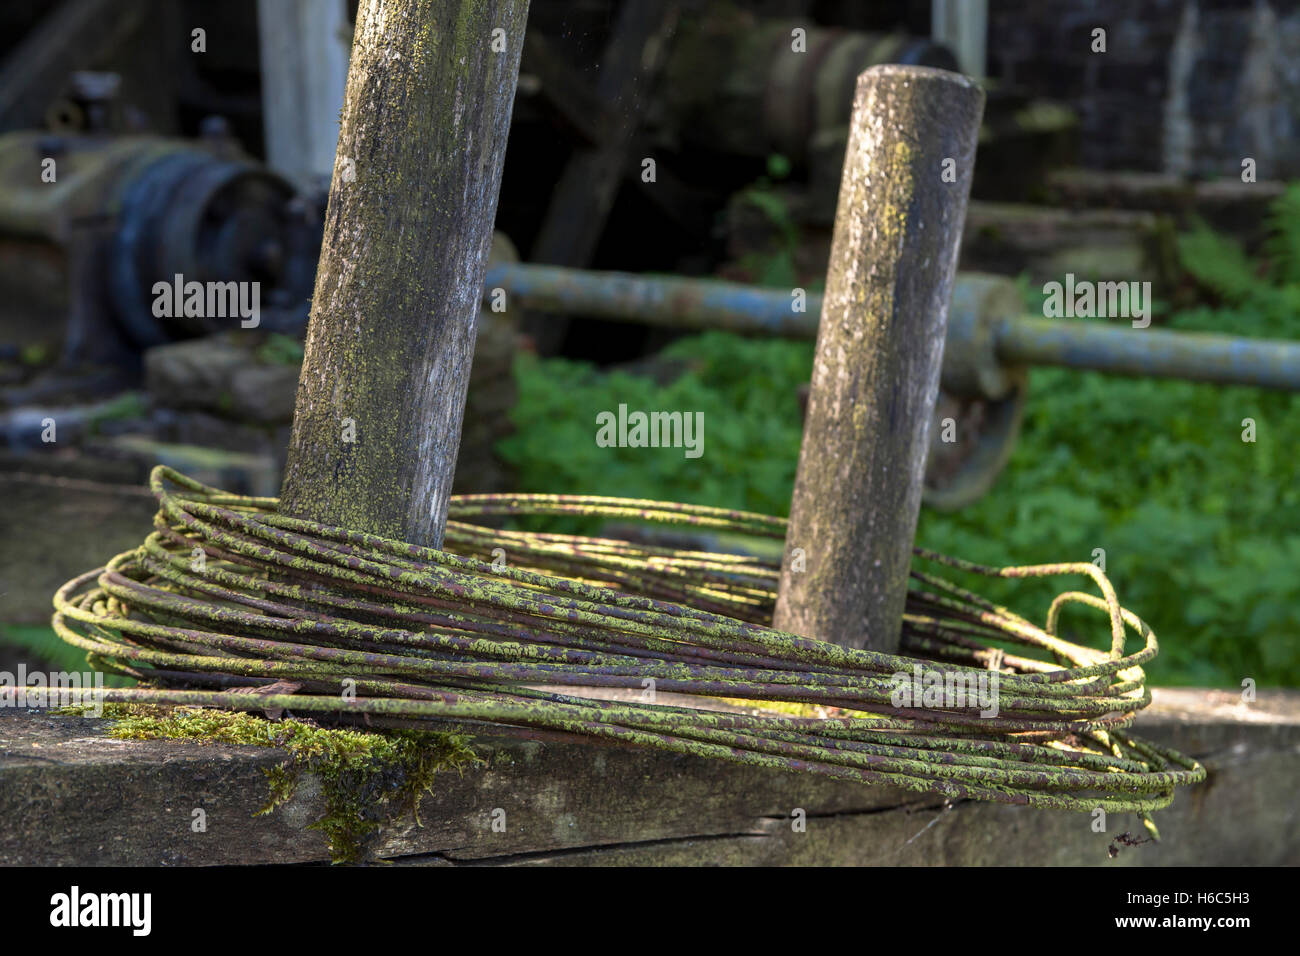 Germany, Hagen, Hagen Open-air Museum, copper rust on wire in front of a wire-drawing mill. Stock Photo